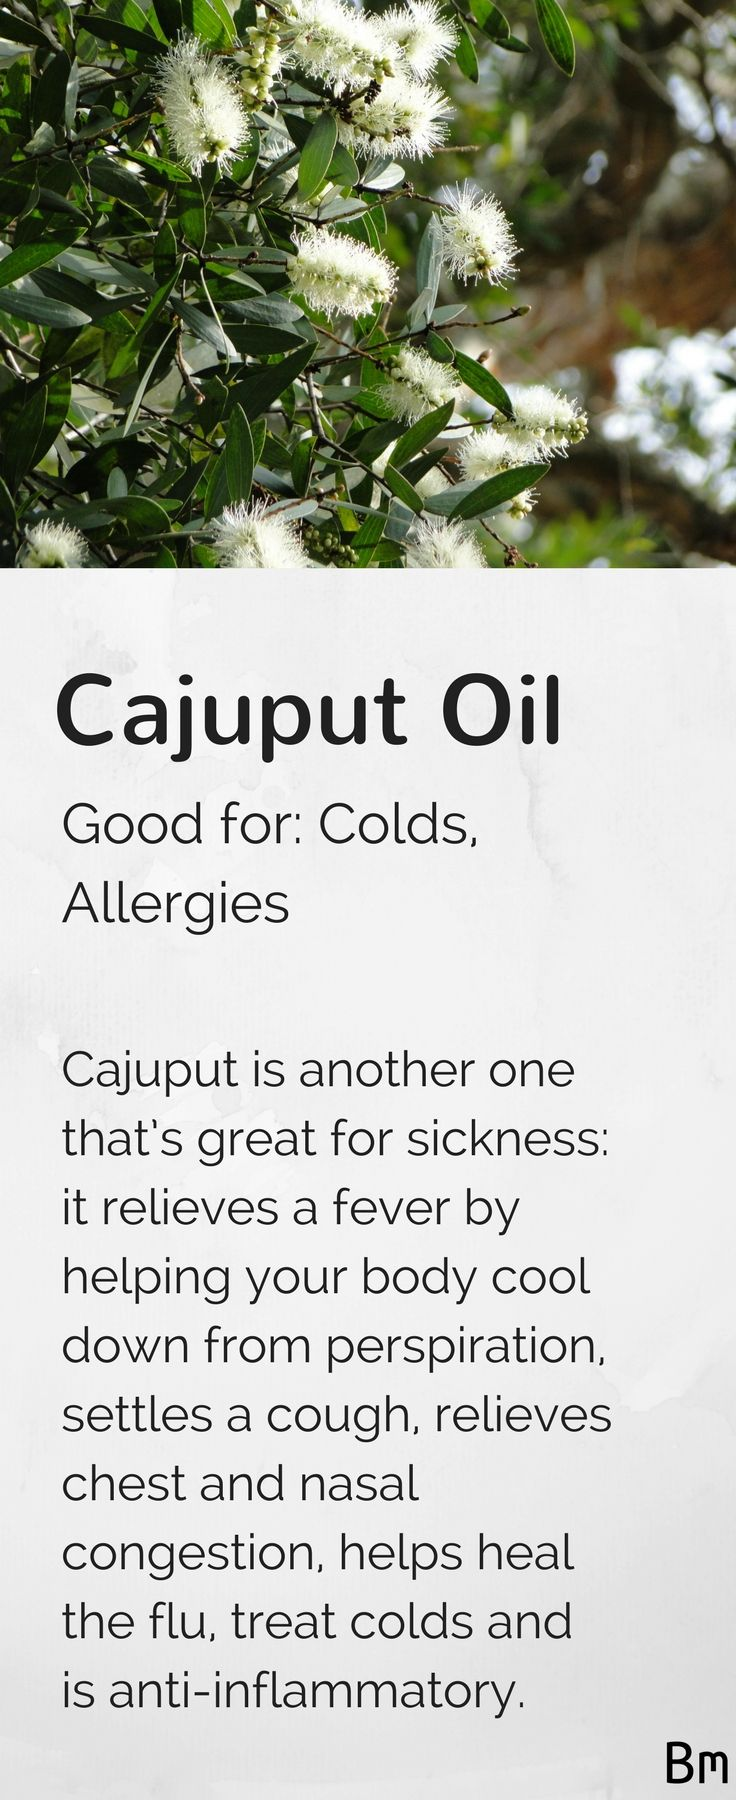 Cajuput essential oil (or cajeput oil) relieves fever by helping your body cool down through sweating, it helps ease a cough, relieves chest and nasal congestion, and helps you recover from a cold. Diffuse this oil by your bed using an oil diffuser or use a few drops in a body lotion, so you can massage the mixture onto your chest. Click on the pin to learn more about essential oils!